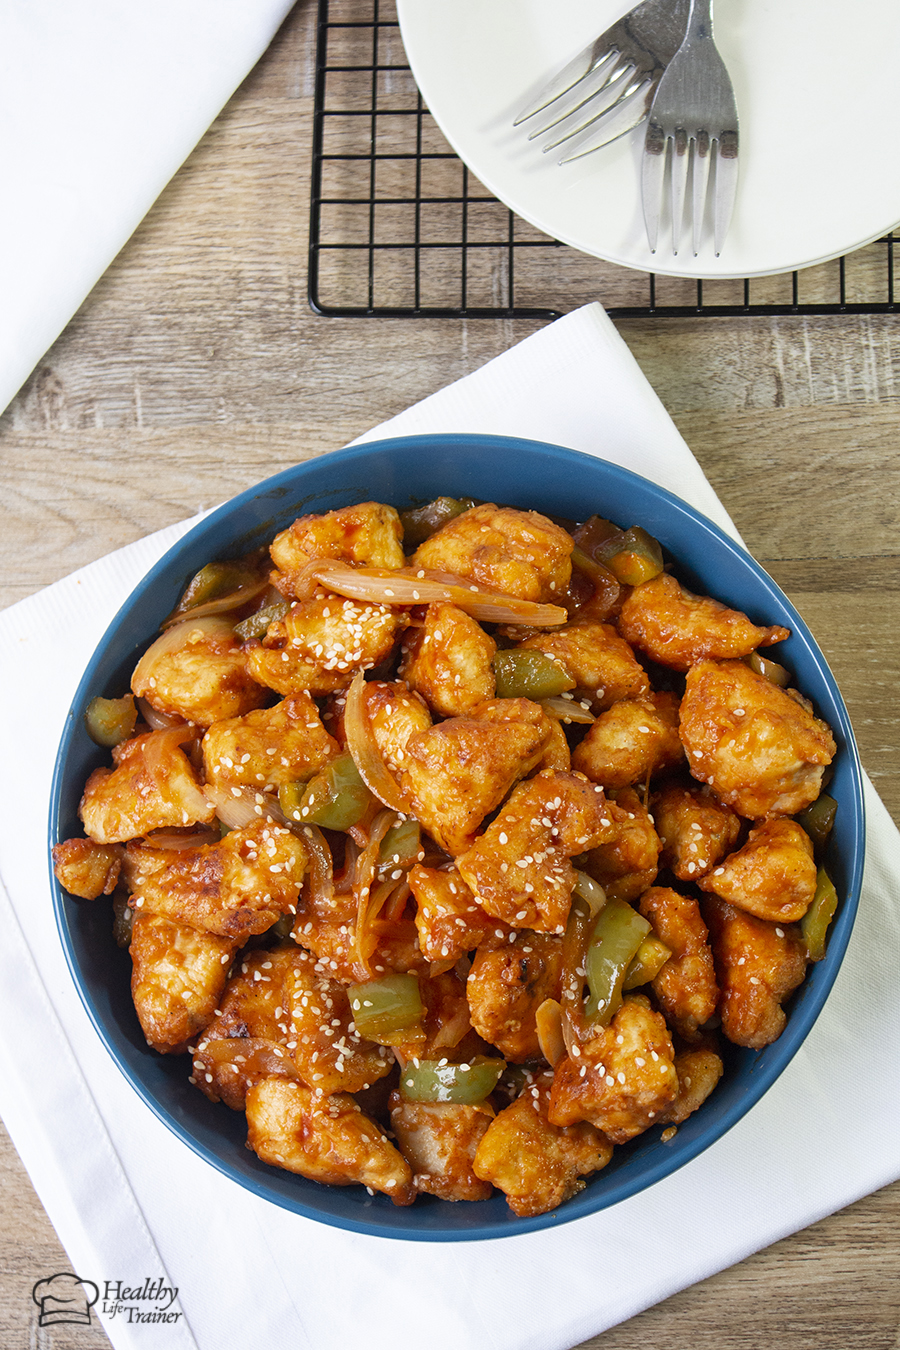 Chinese-style crispy sweet and sour chicken recipe is a crispy light fried chicken simmered in a well-balanced fragranced sticky sauce along with crunchy vegetable chunks.